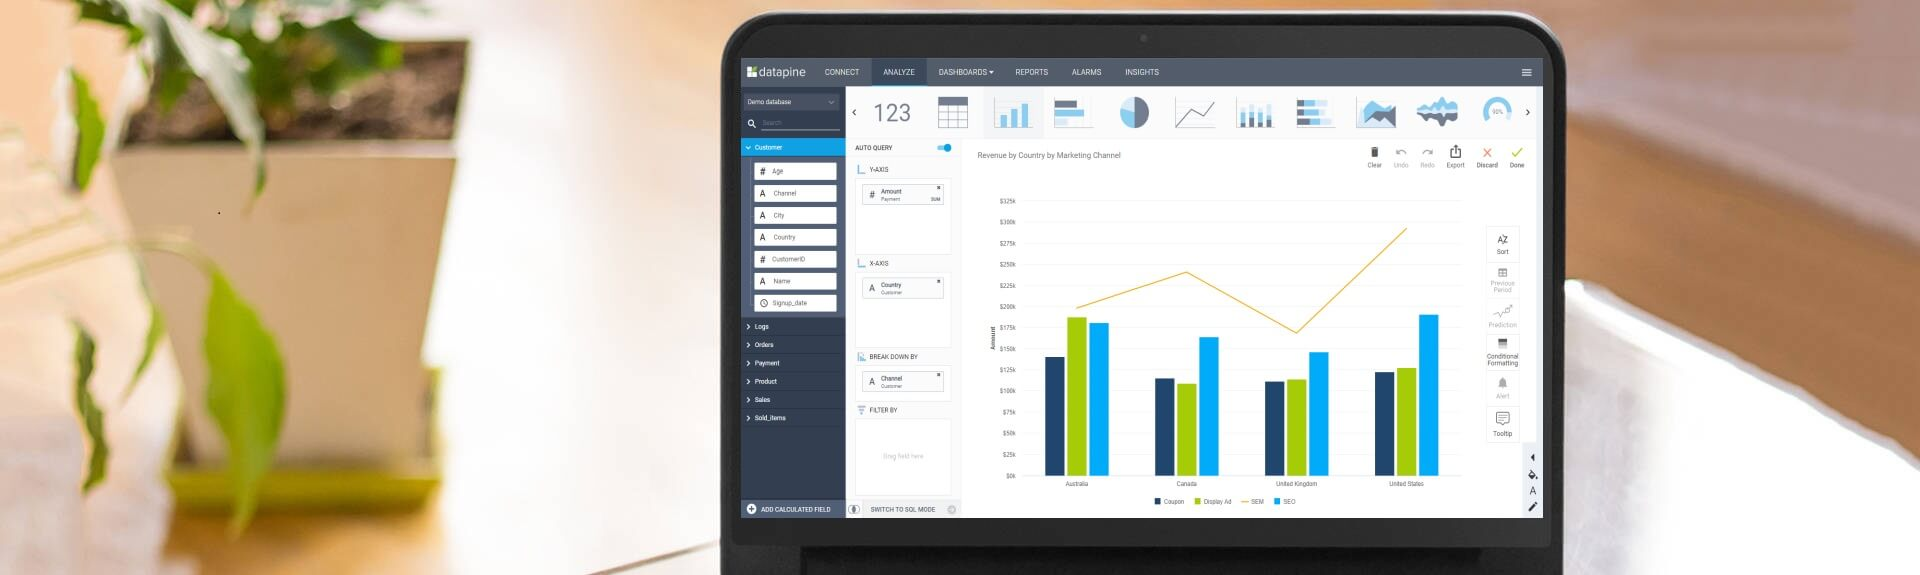 self service analytics tools - software for everyone from managers to data scientists